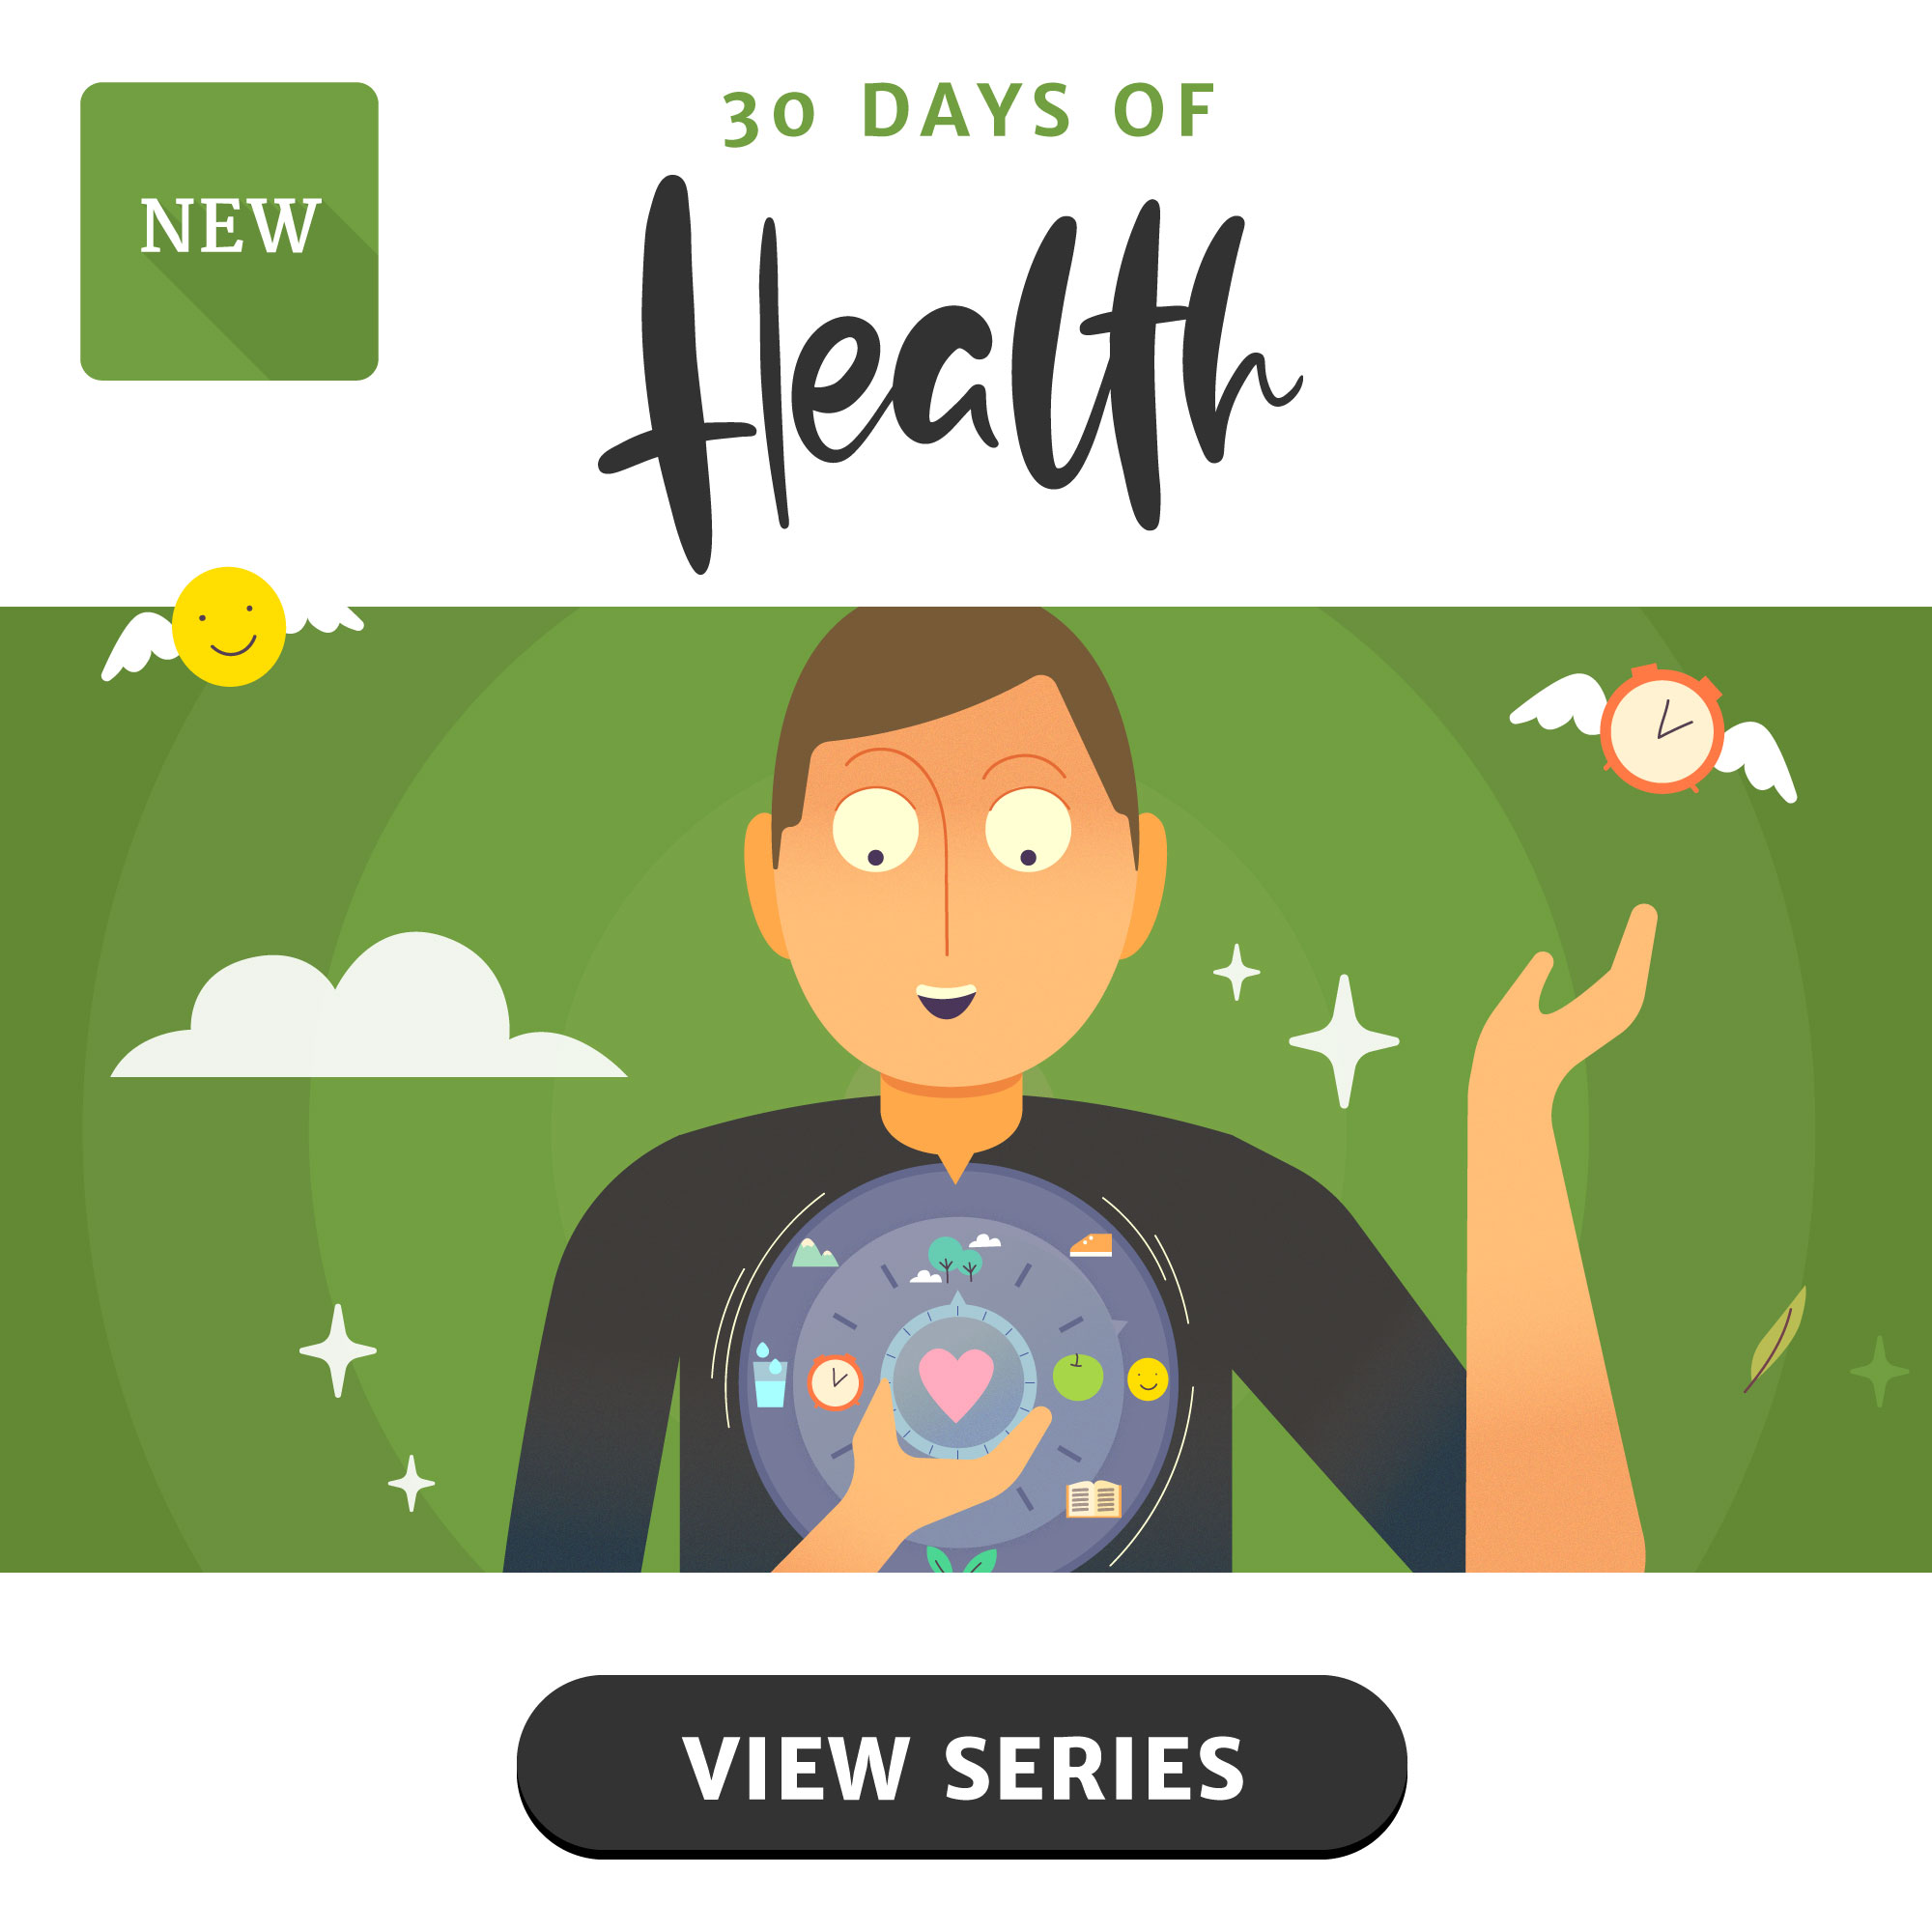 30 Days of Health Series